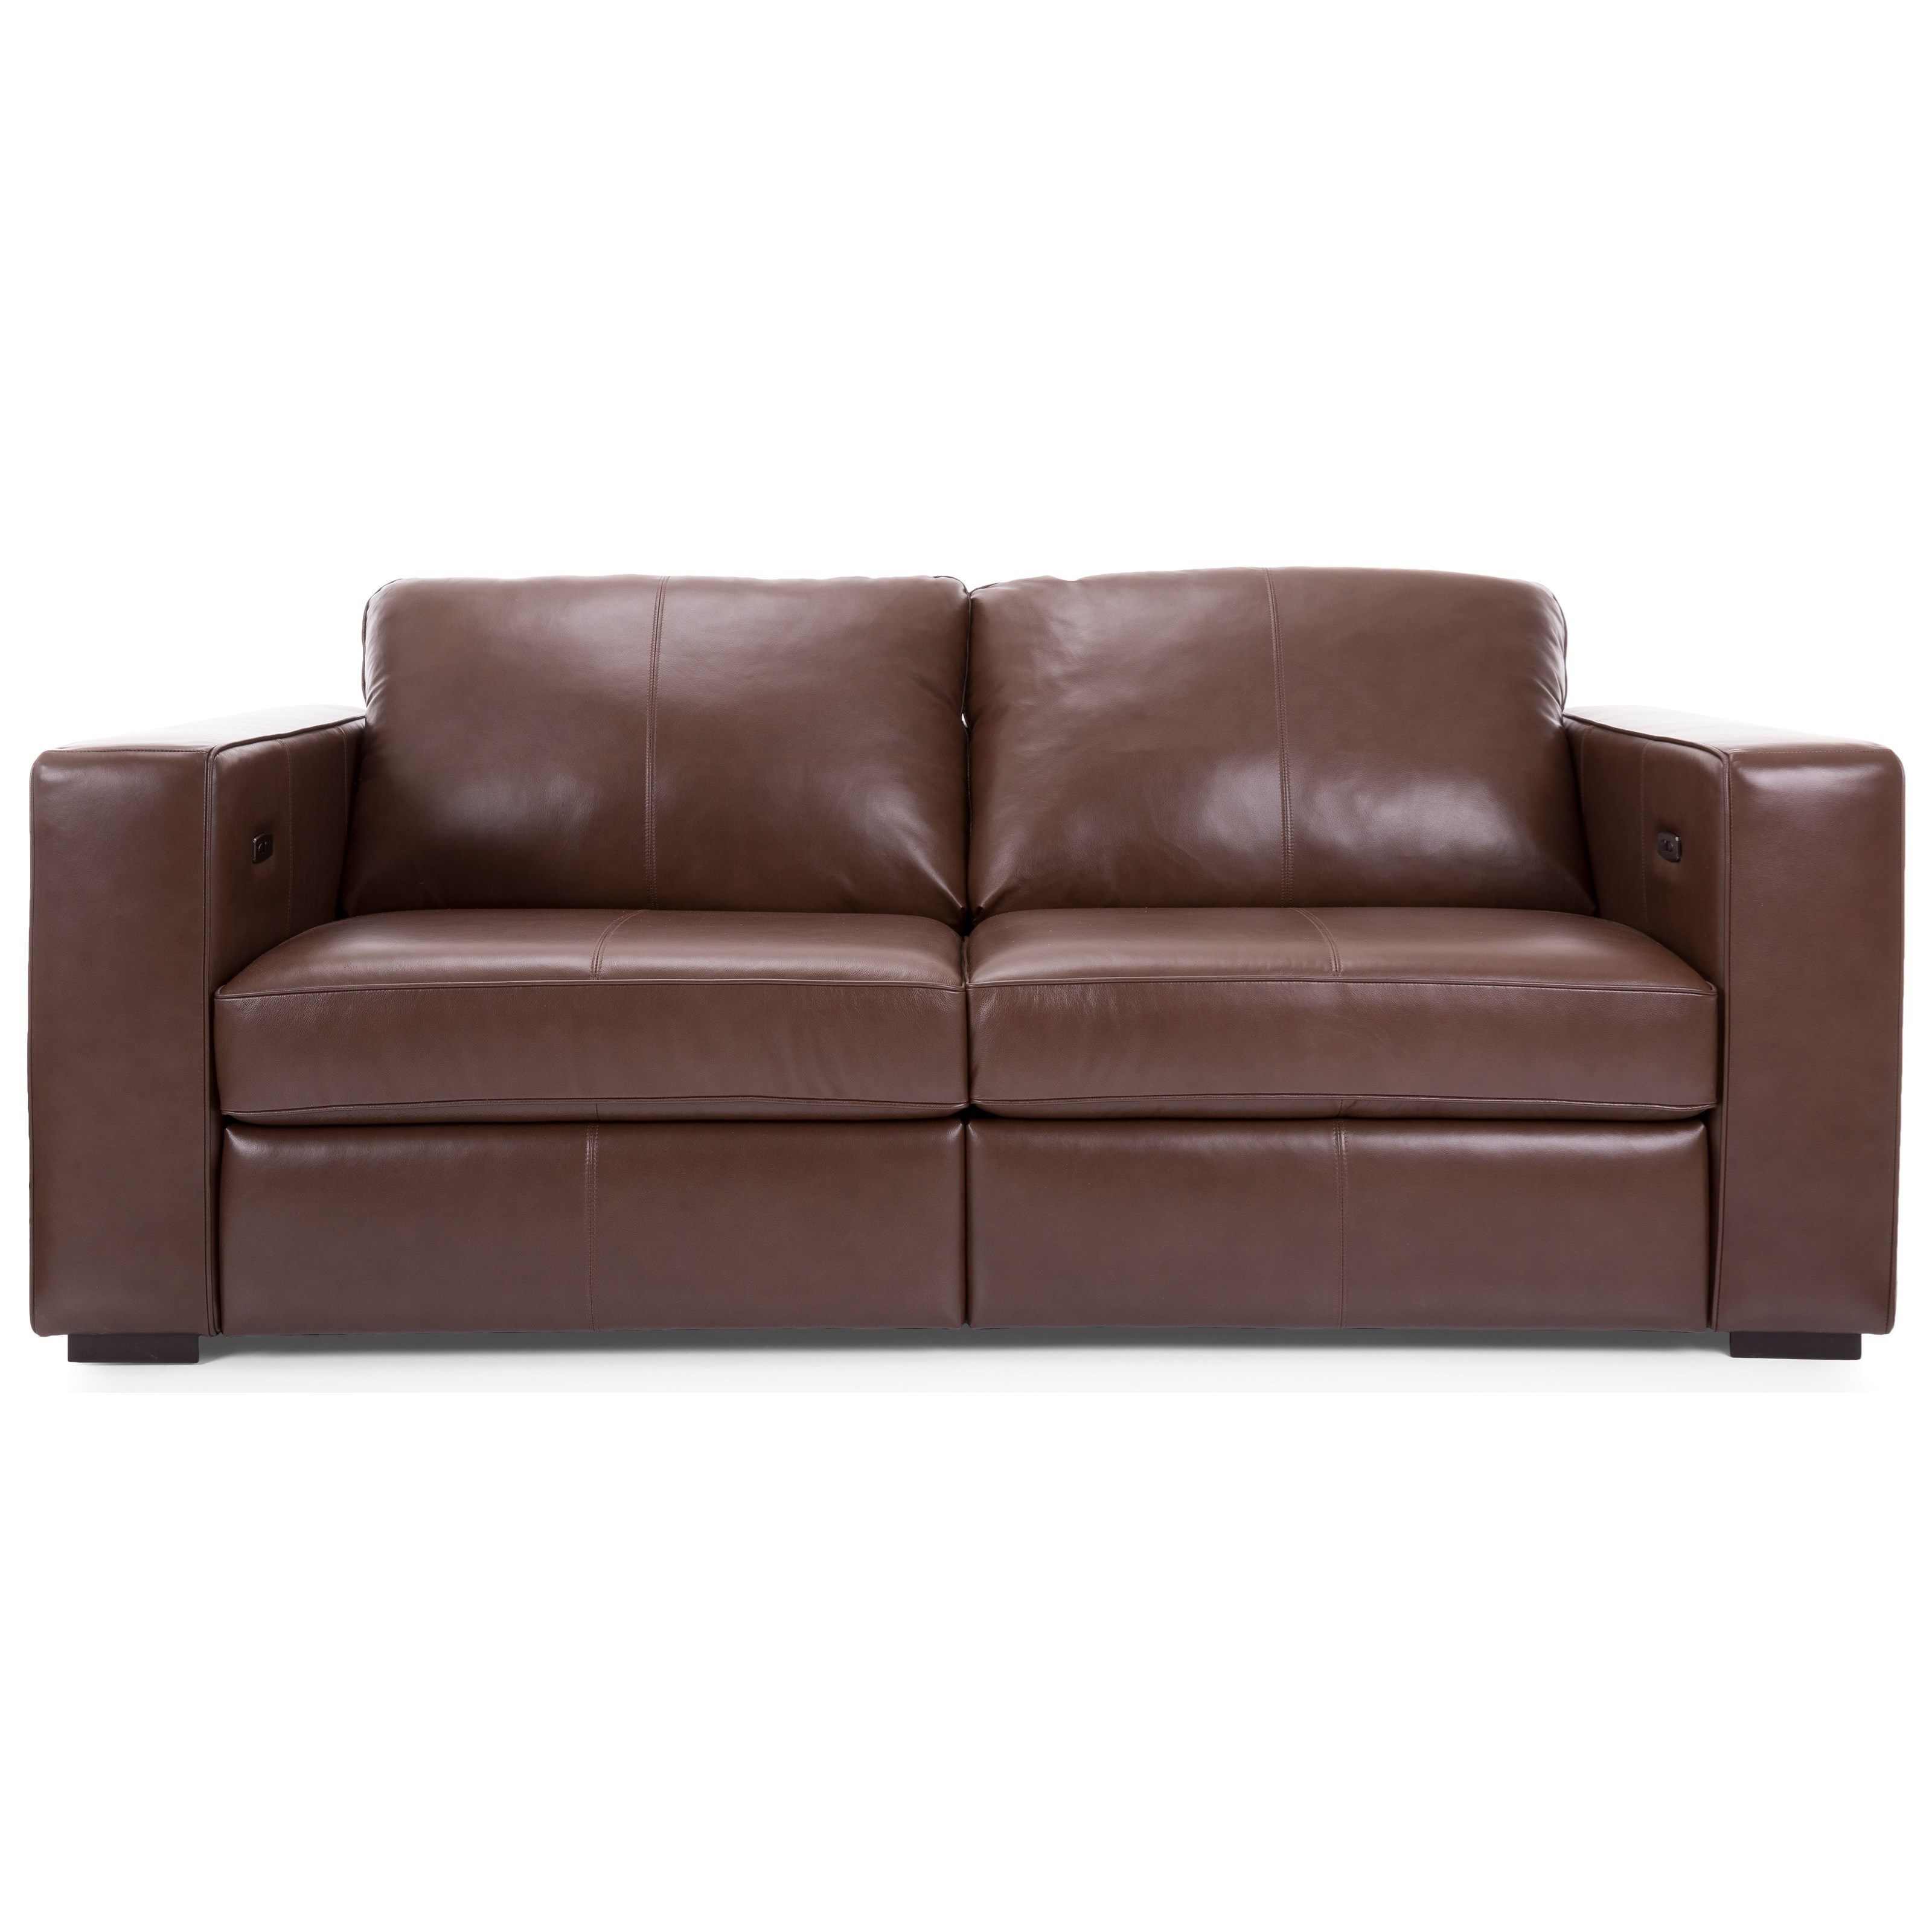 2900 Power Sofa by Decor-Rest at Rooms for Less